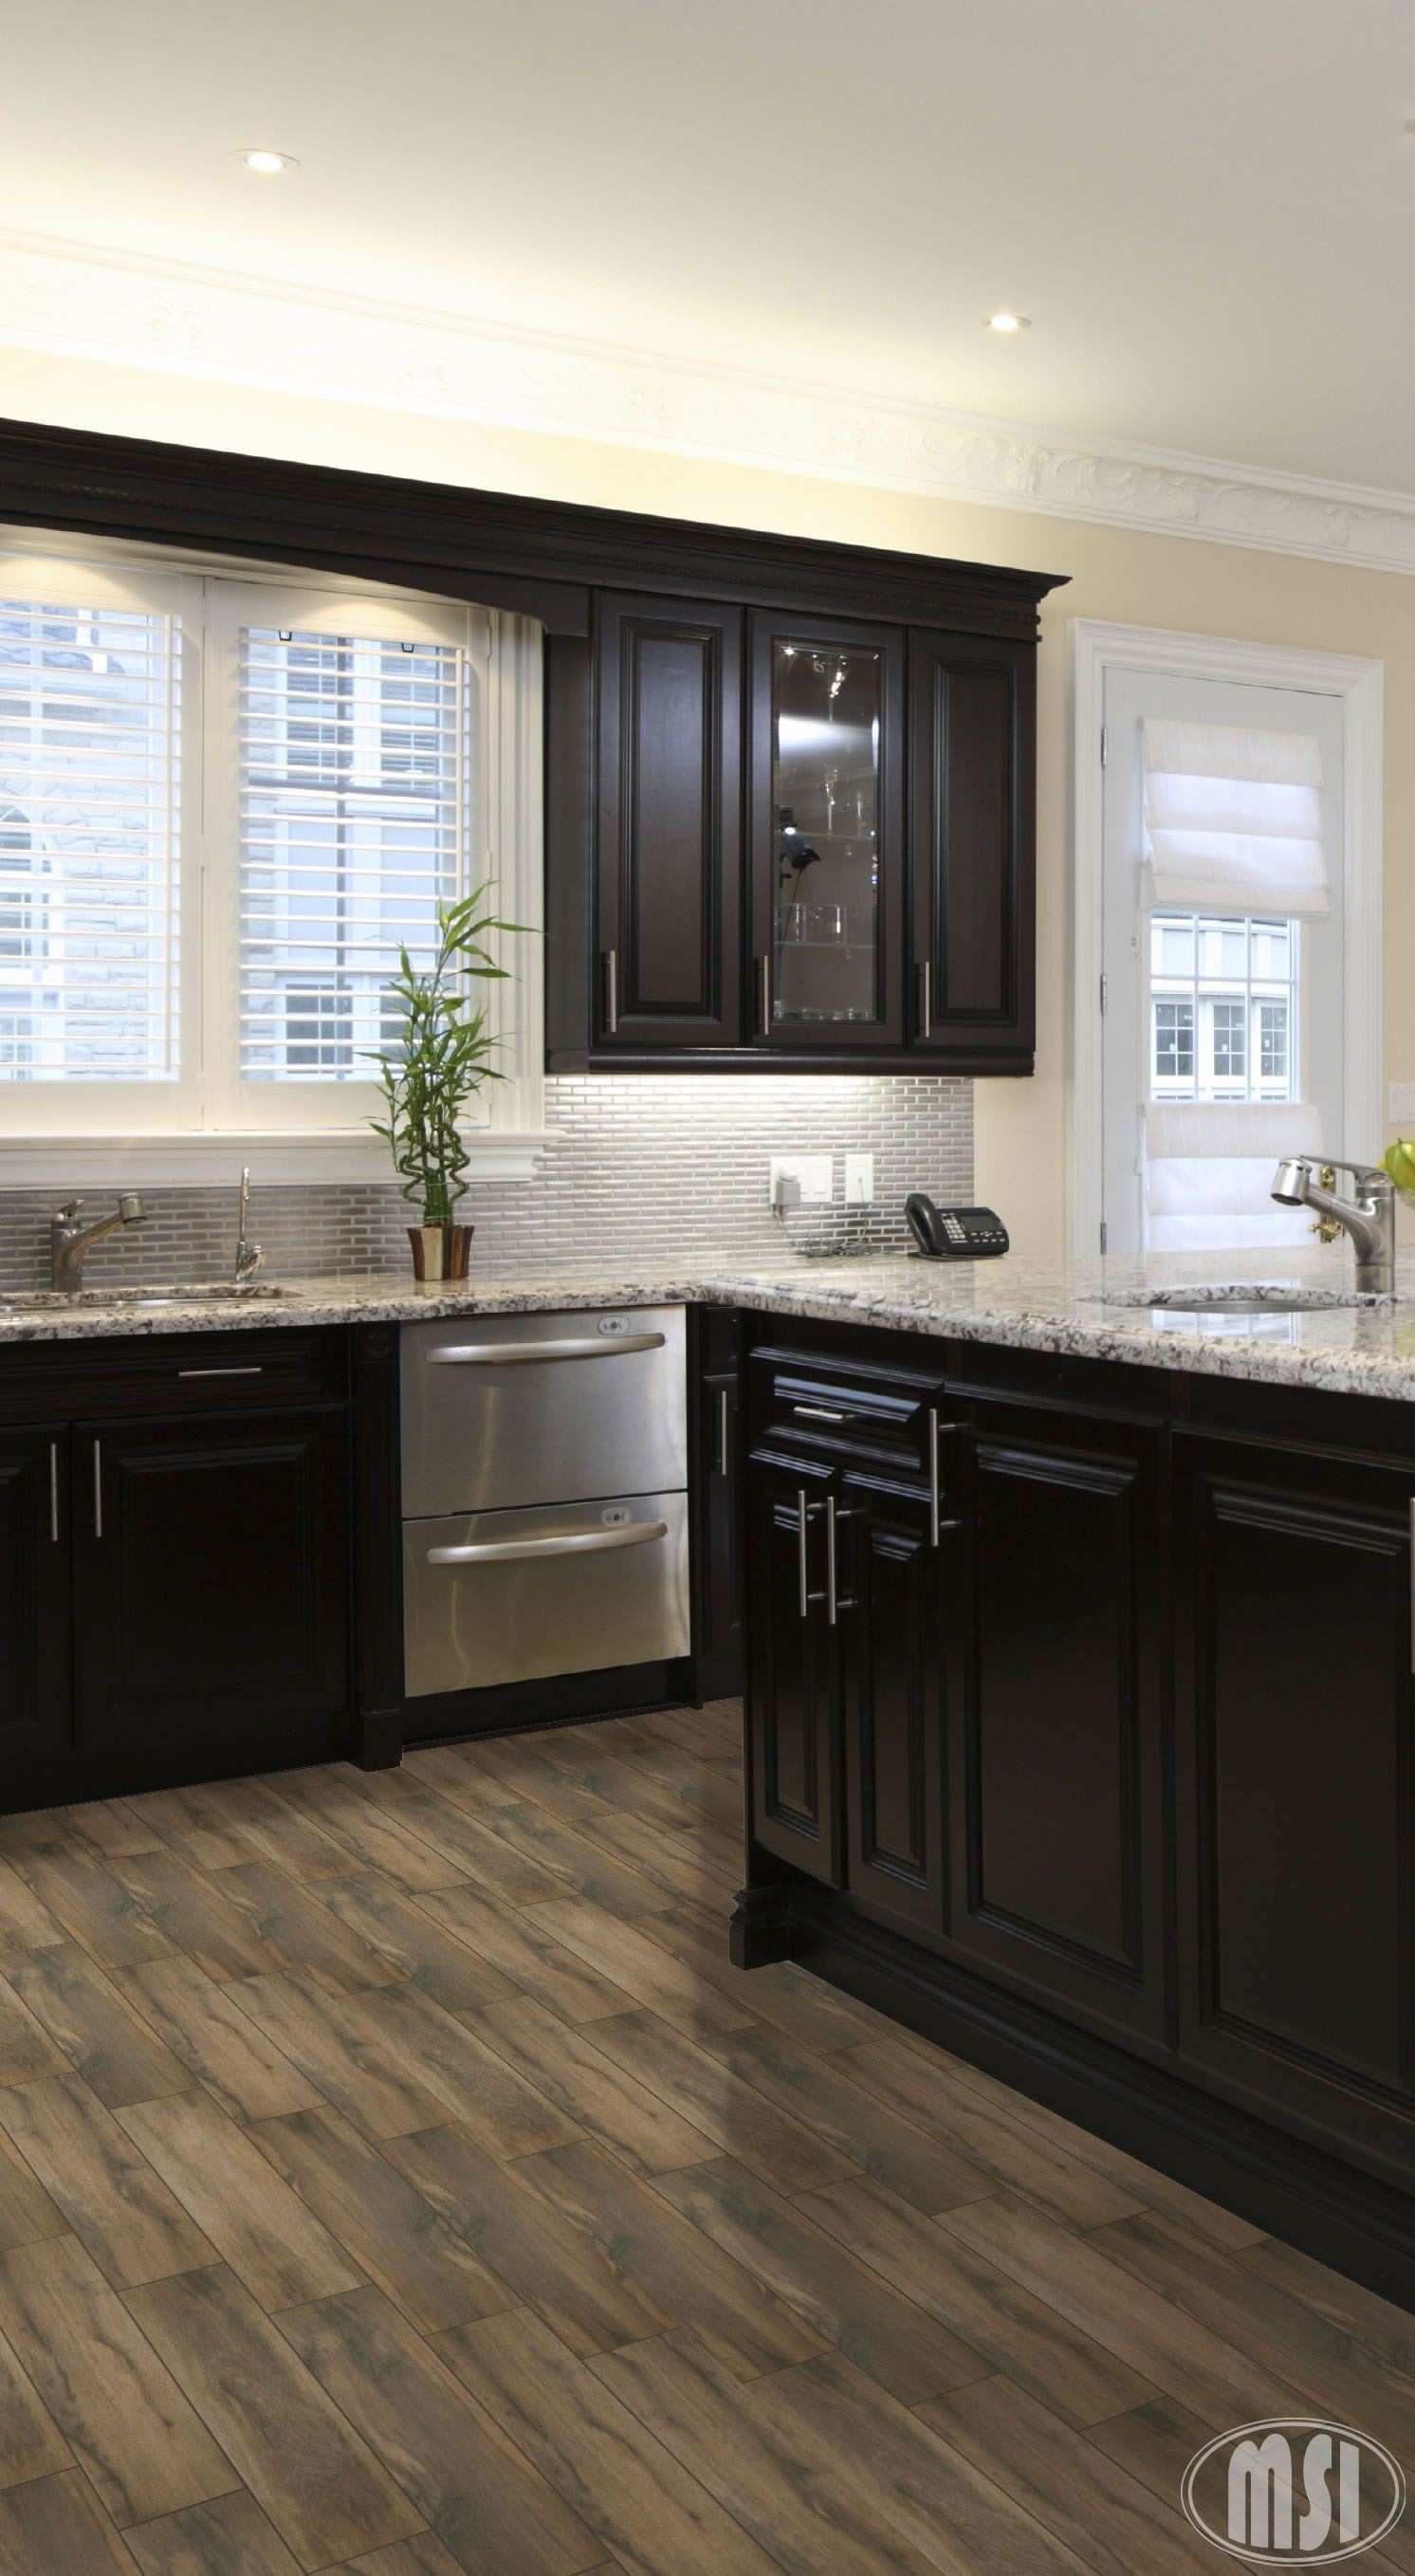 hardwood flooring lowes or home depot of home depot kitchen appliances luxury gorgeous grey hardwood floors with regard to home depot kitchen appliances lovely 16 best best luxury kitchen appliances of home depot kitchen appliances